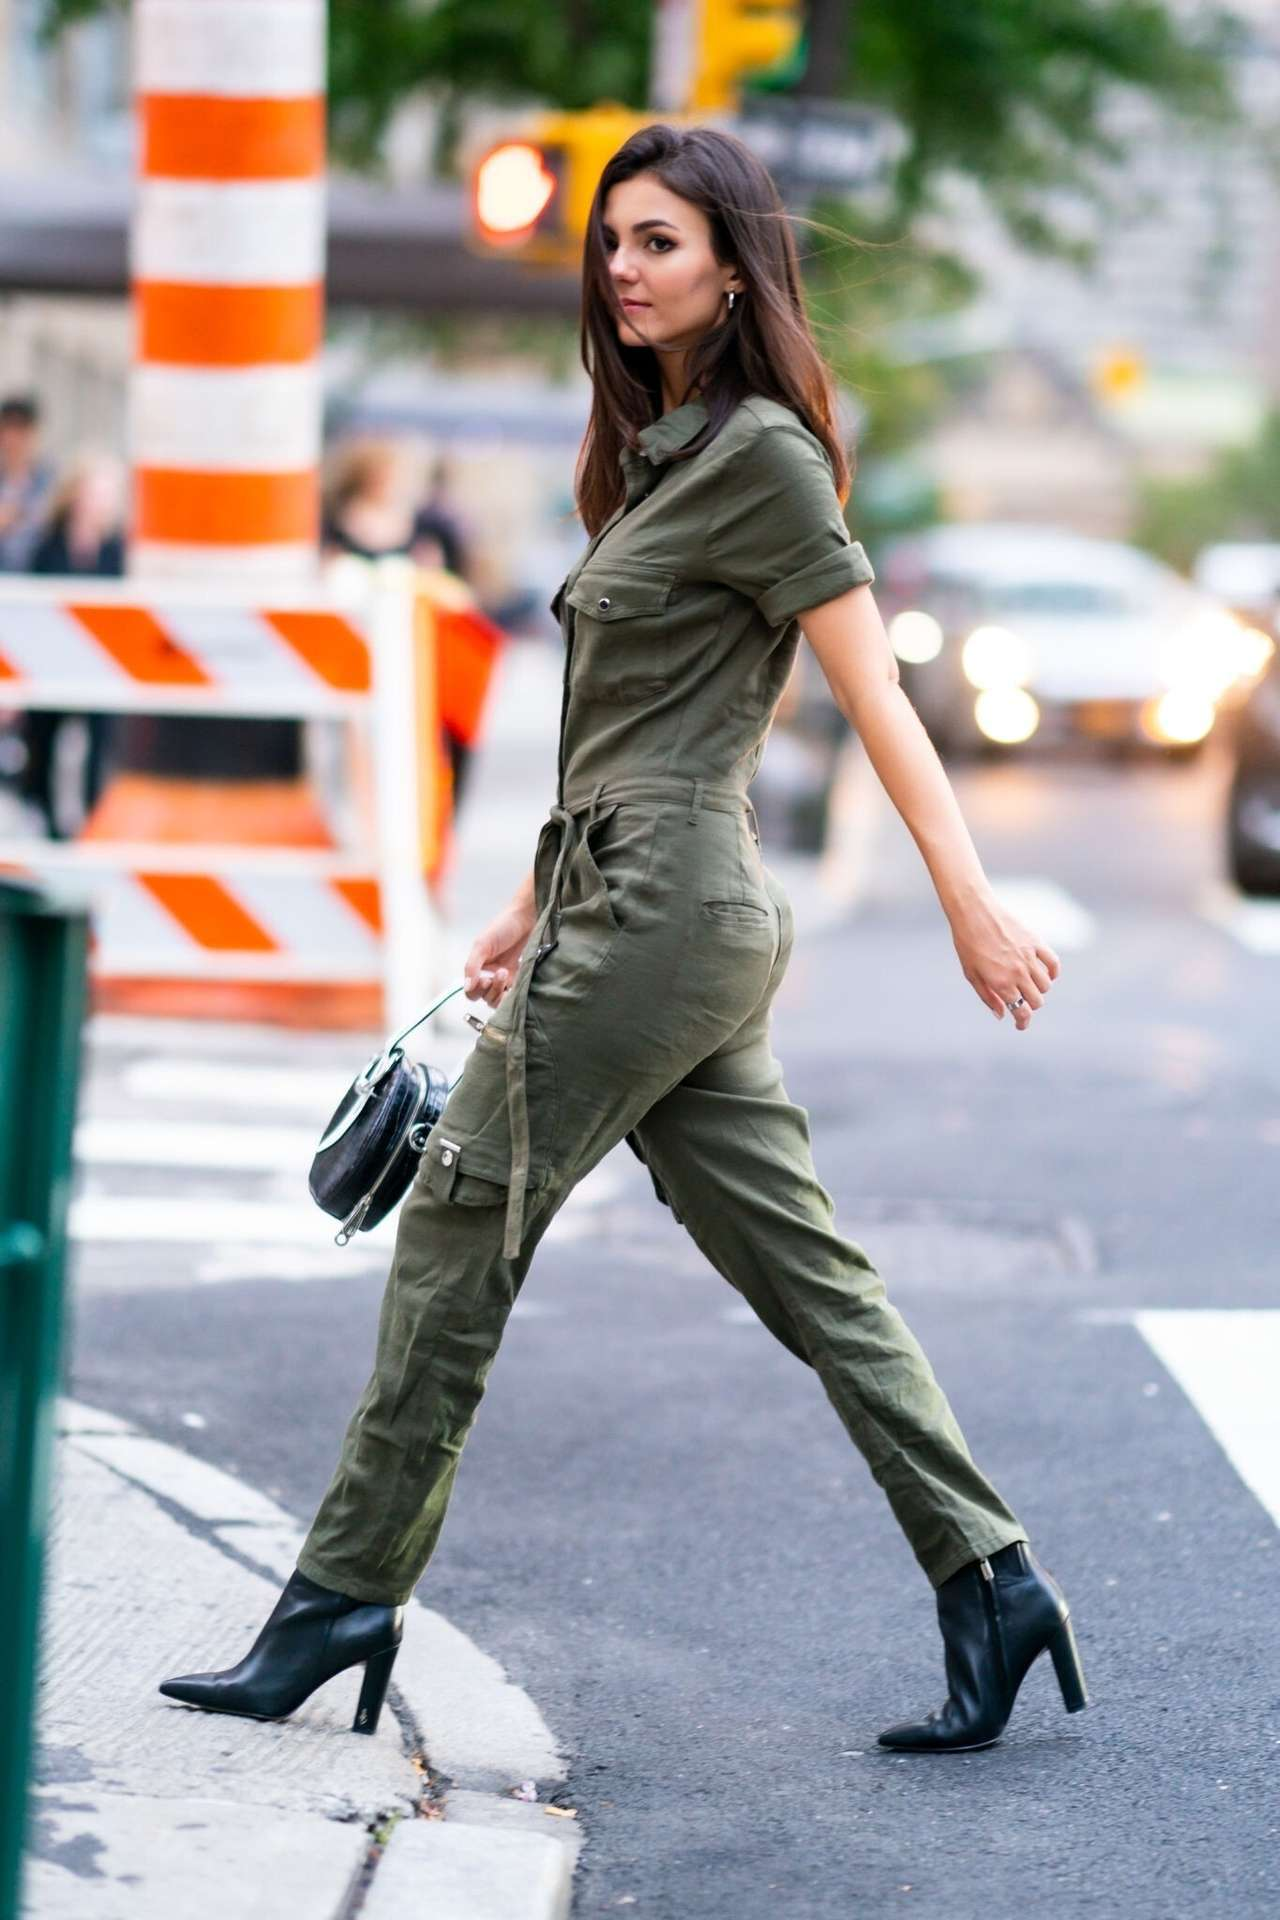 Victoria Justice in Jumpsuit Out in NYC